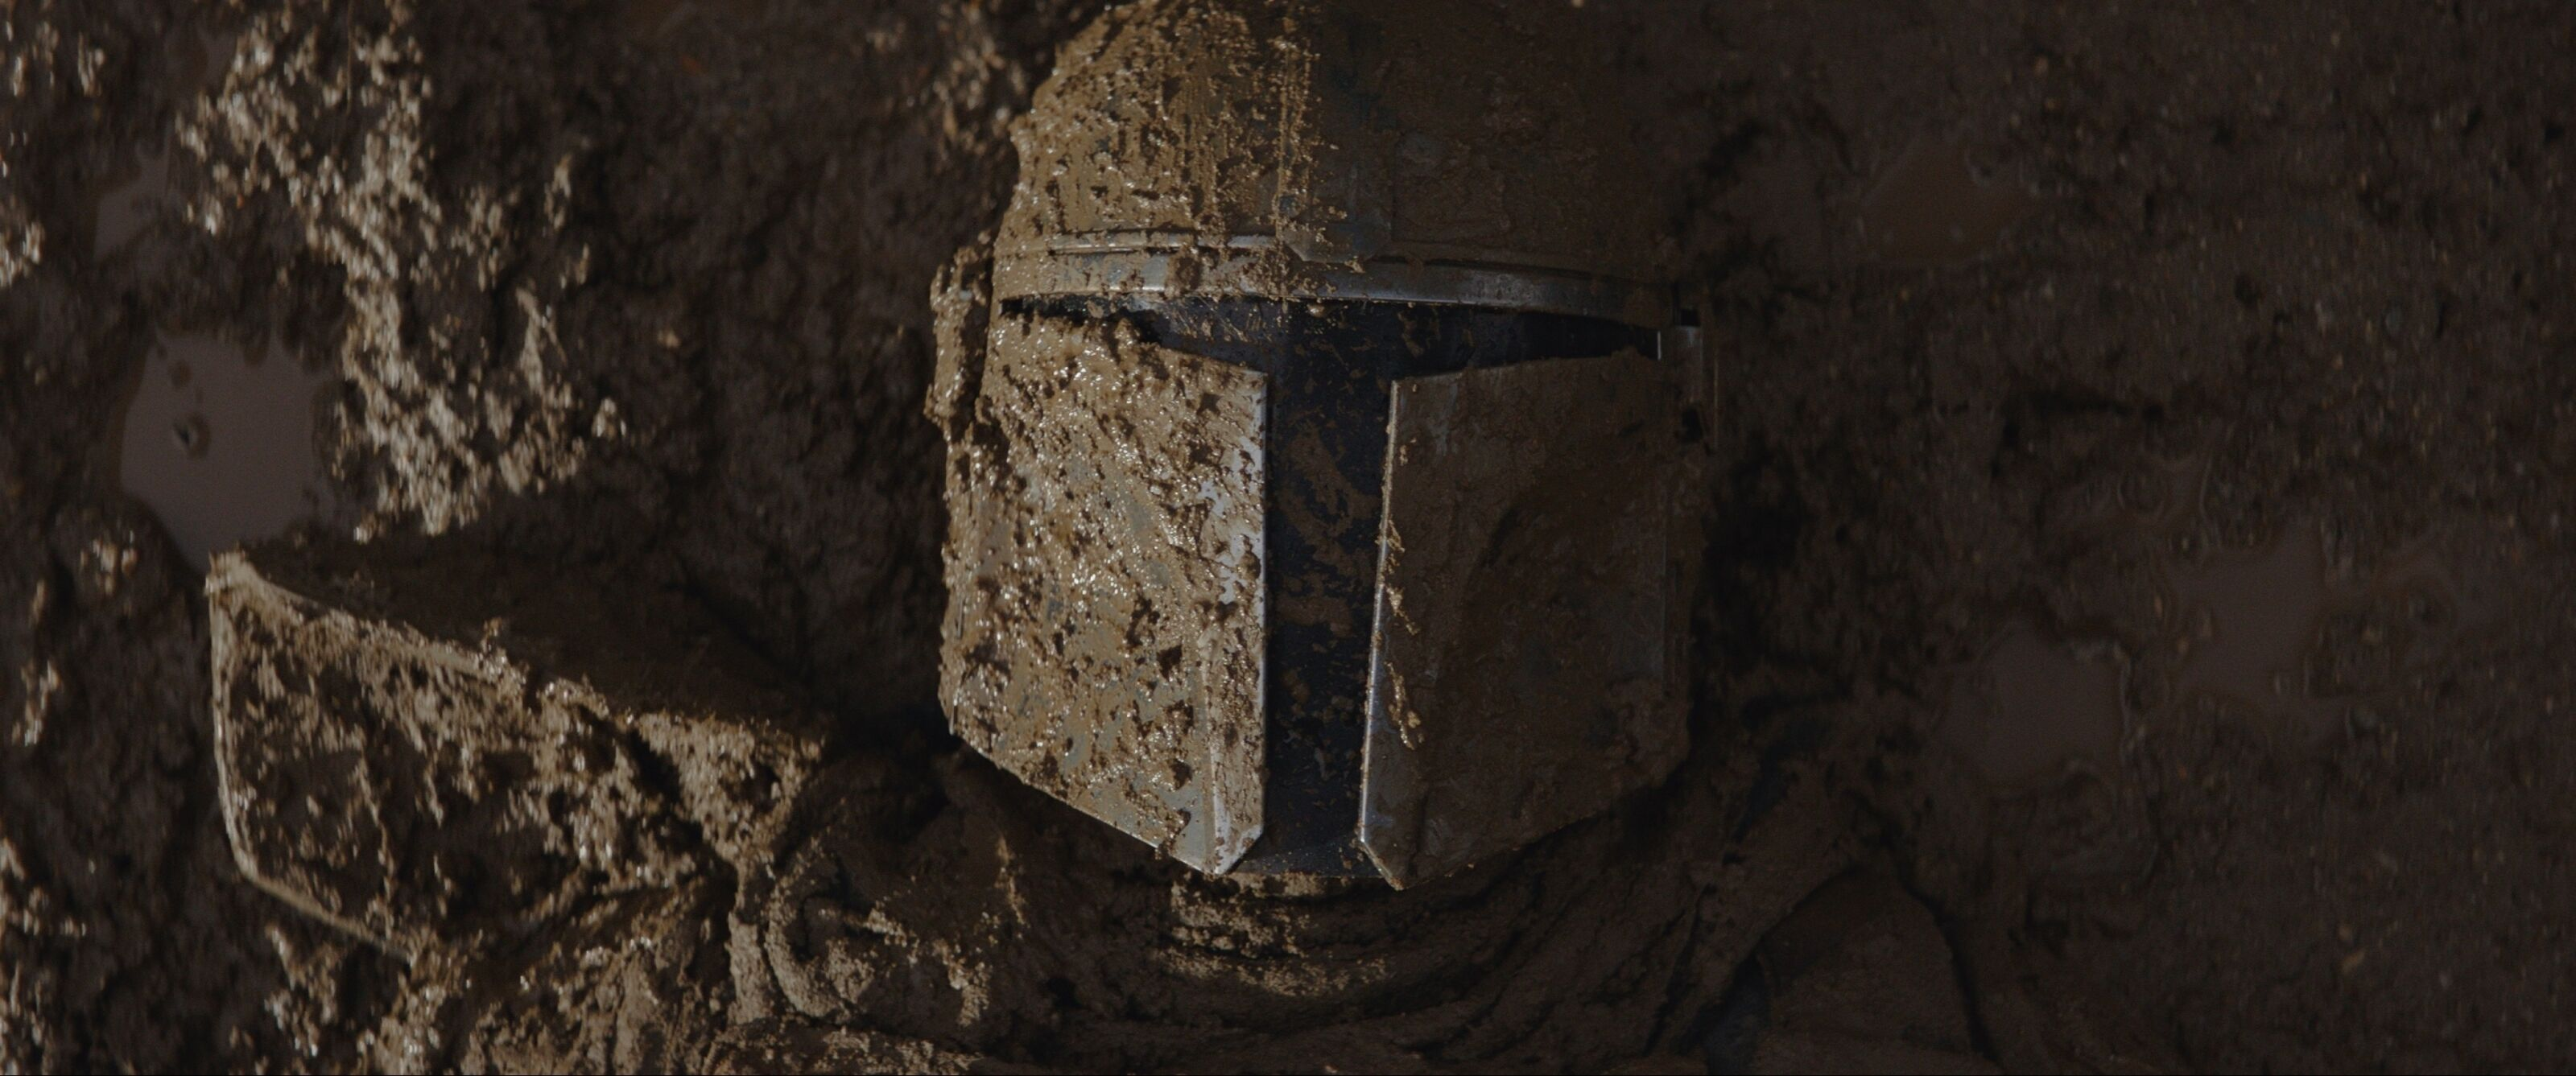 Star Wars: The Mandalorian is strange in all the right ways